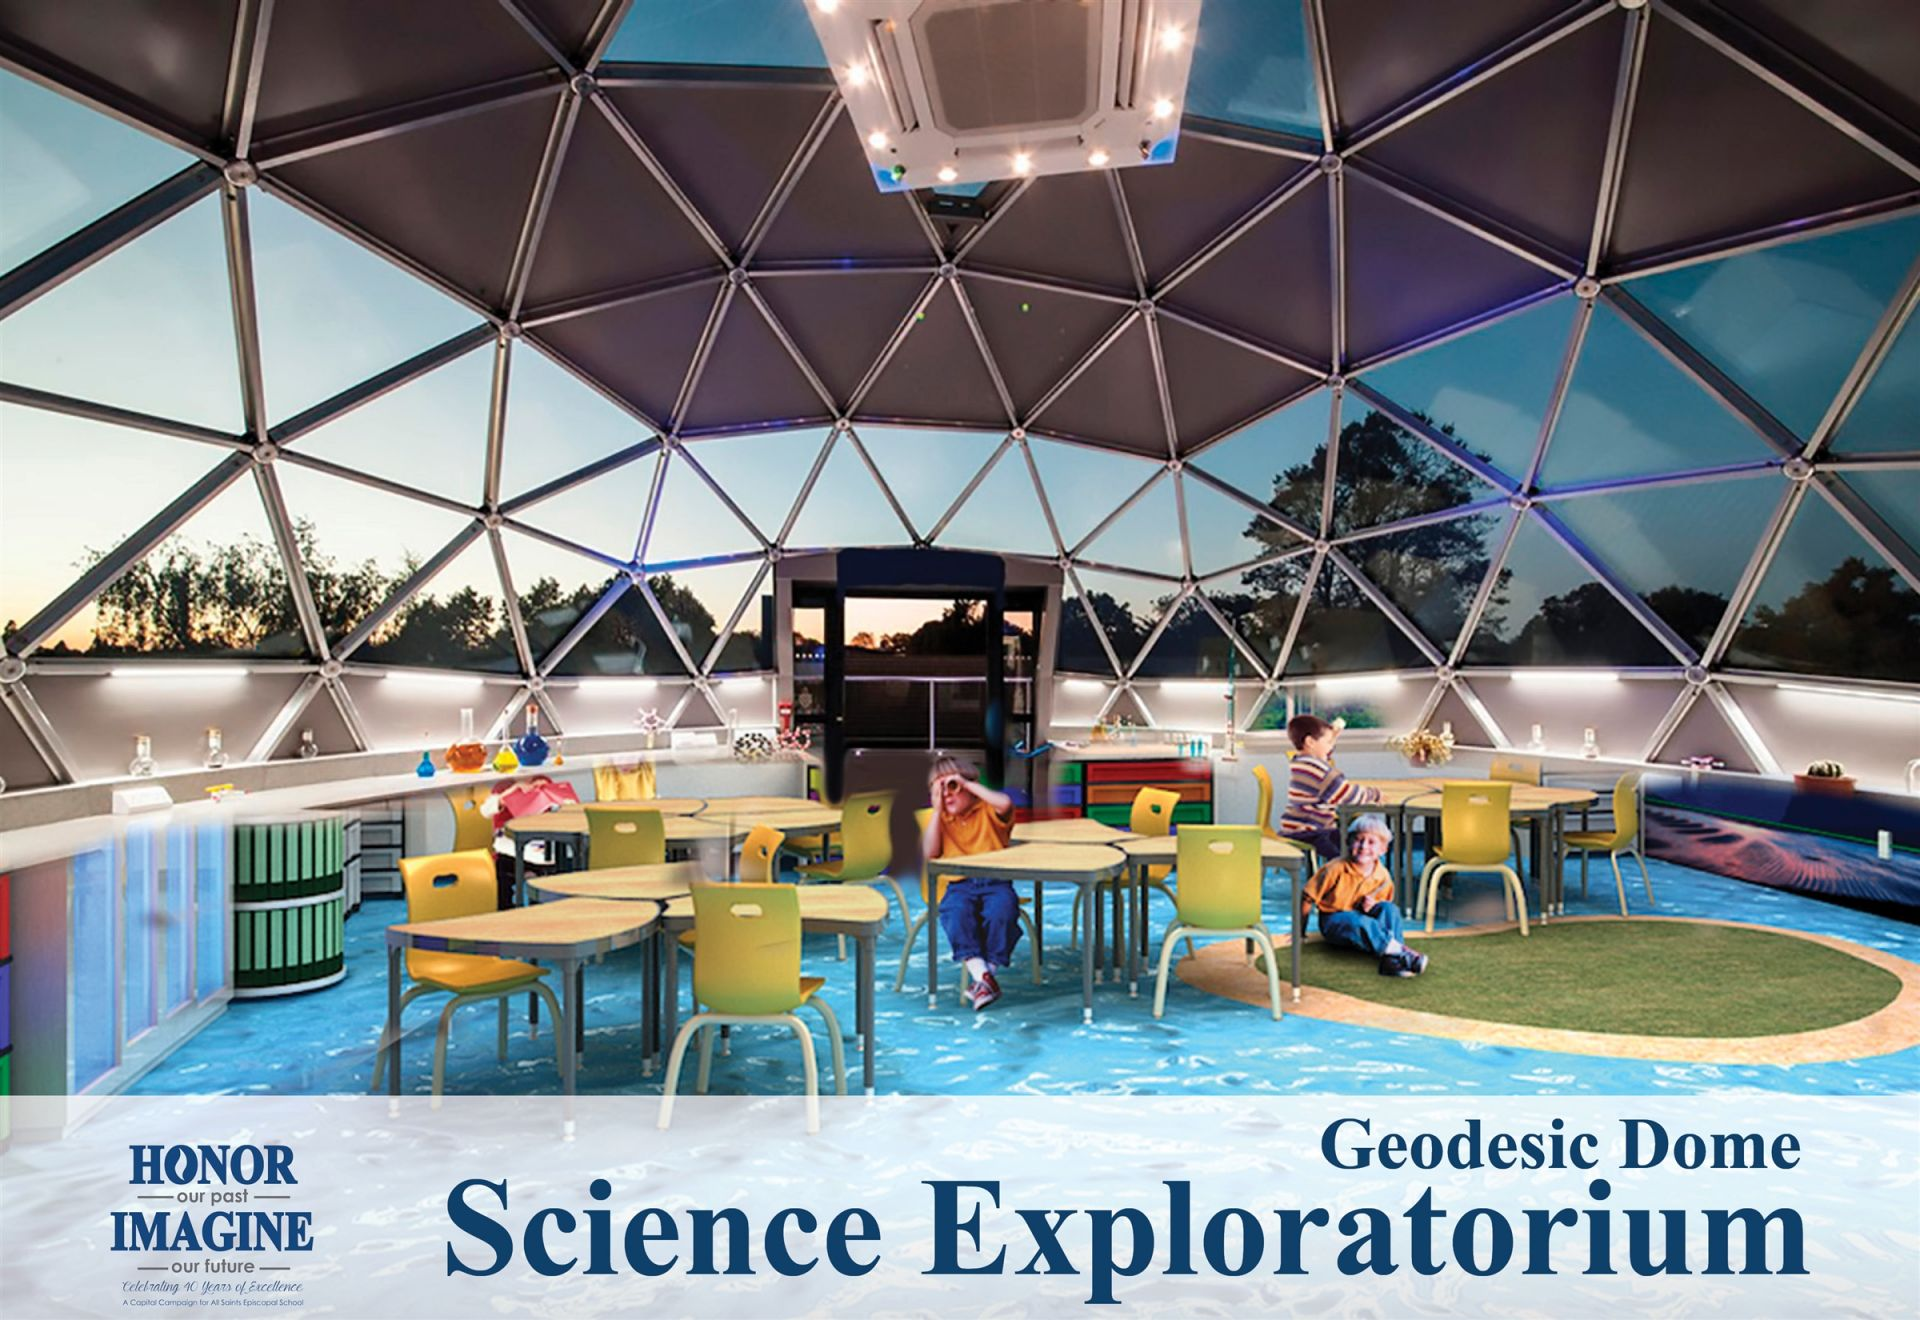 In Summer 2019, we will build a spectacular geodesic dome Science Exploratorium.